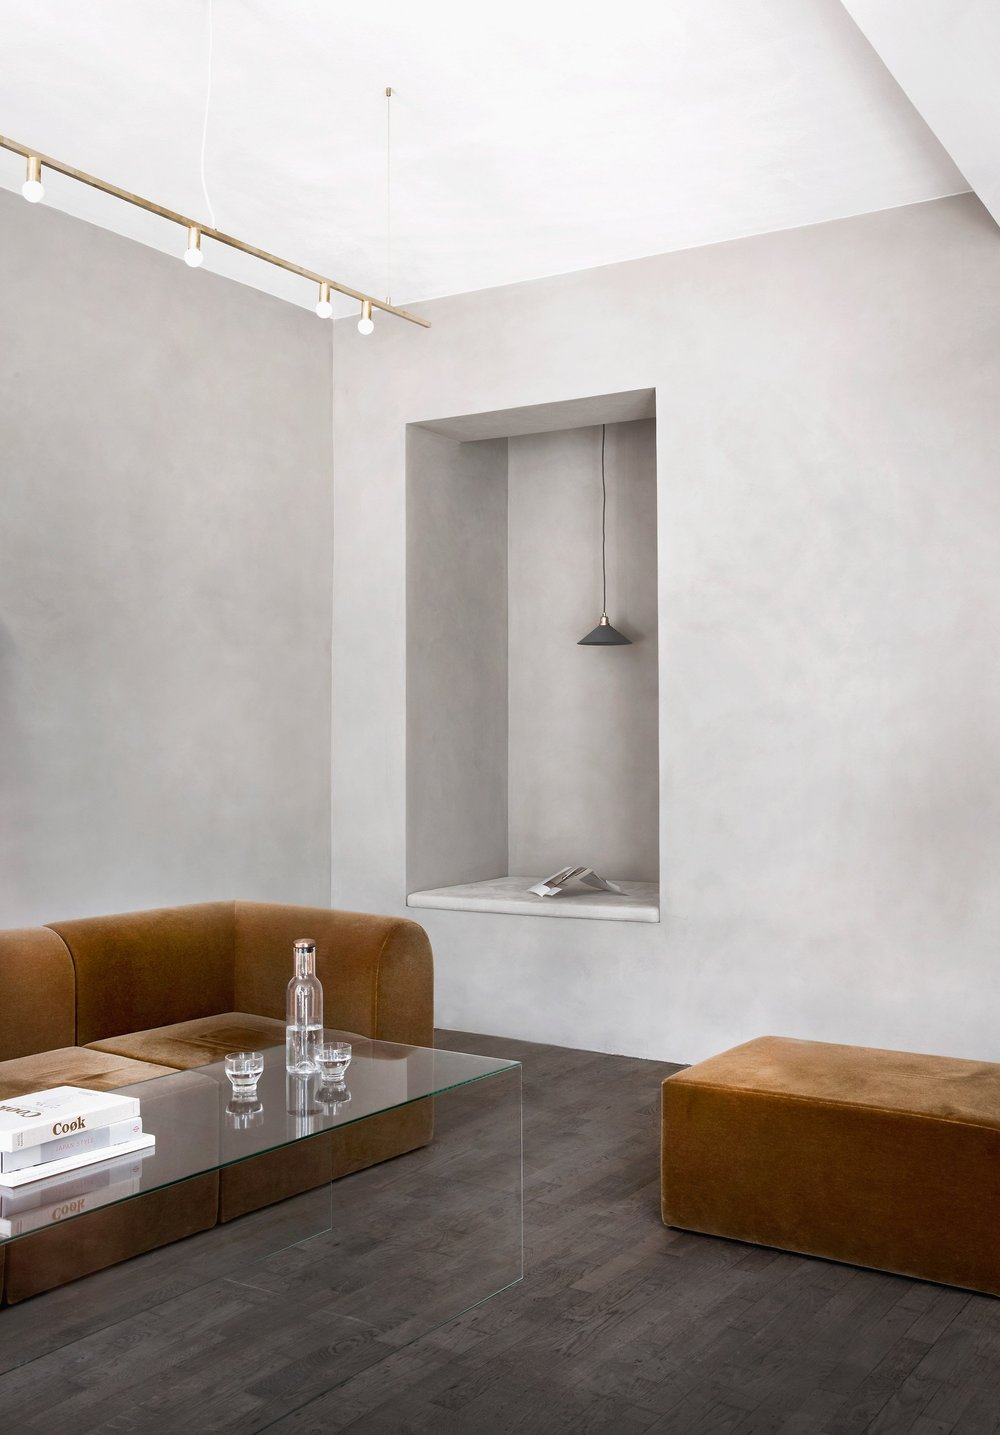 Kinfolk Workspace and Gallery by Norm Architects